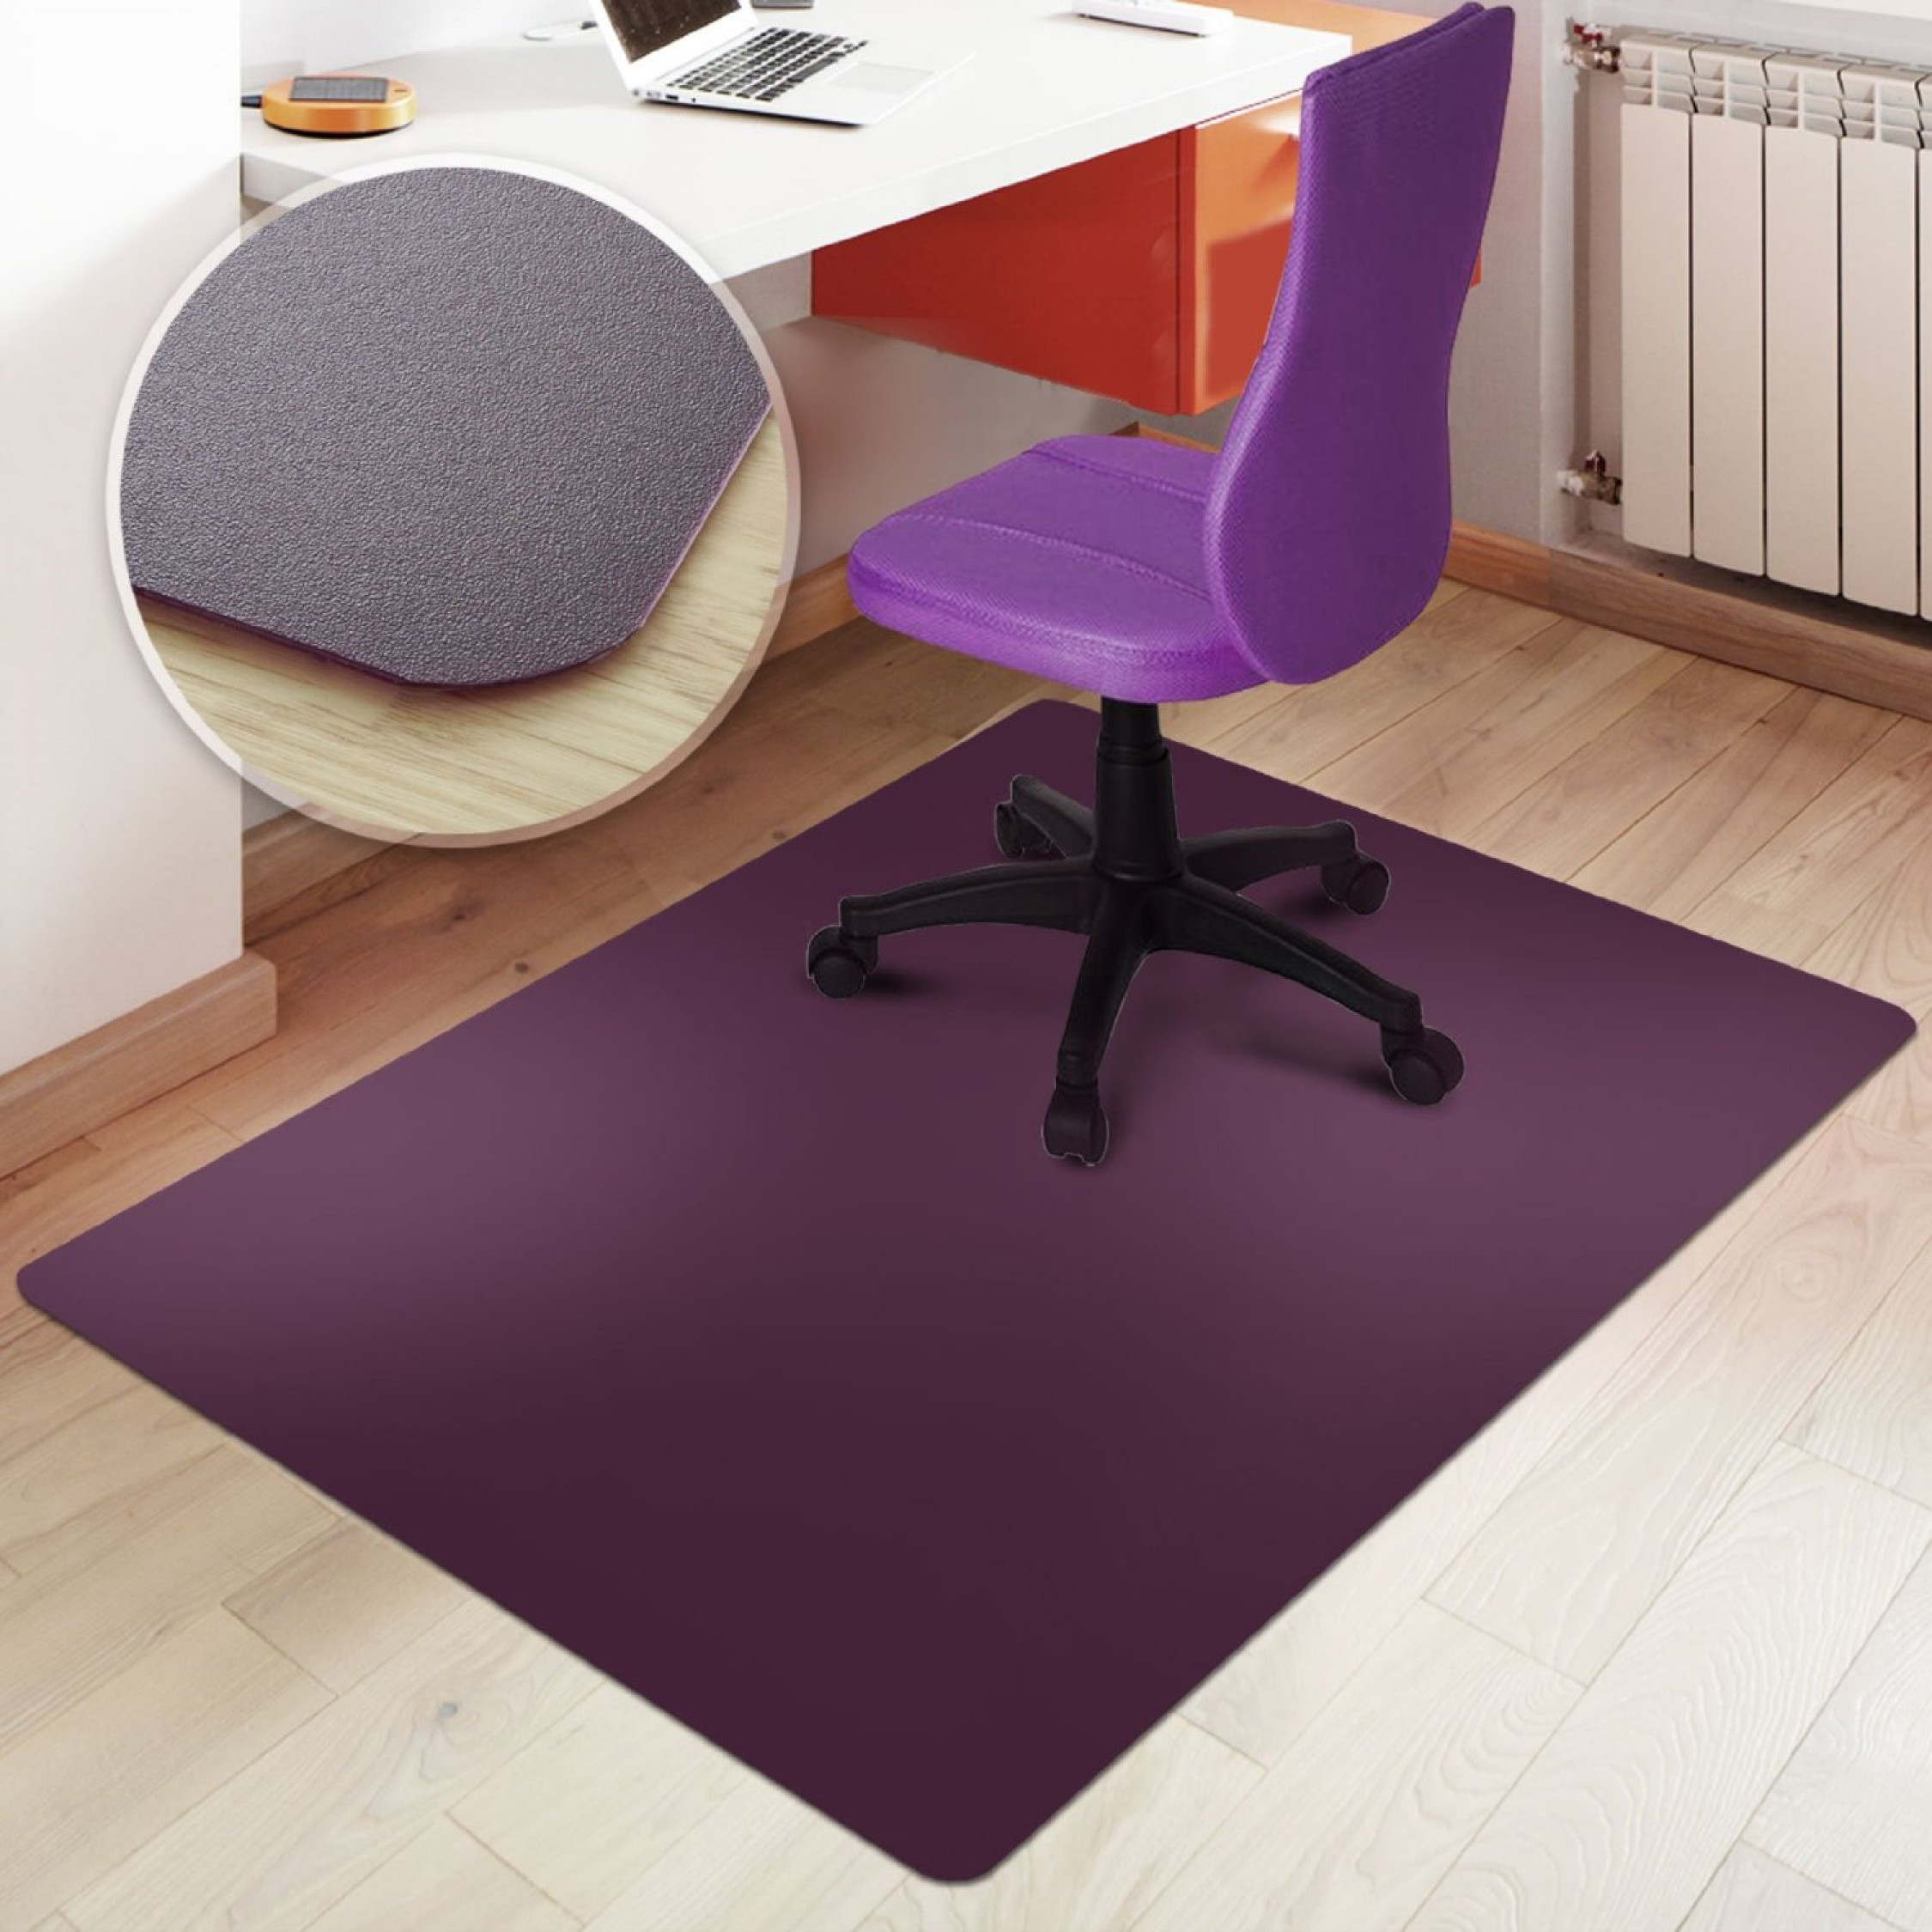 Best ideas about Office Chair Mats . Save or Pin Rectangular fice Chair Mat Purple Hard Floor Protection Now.